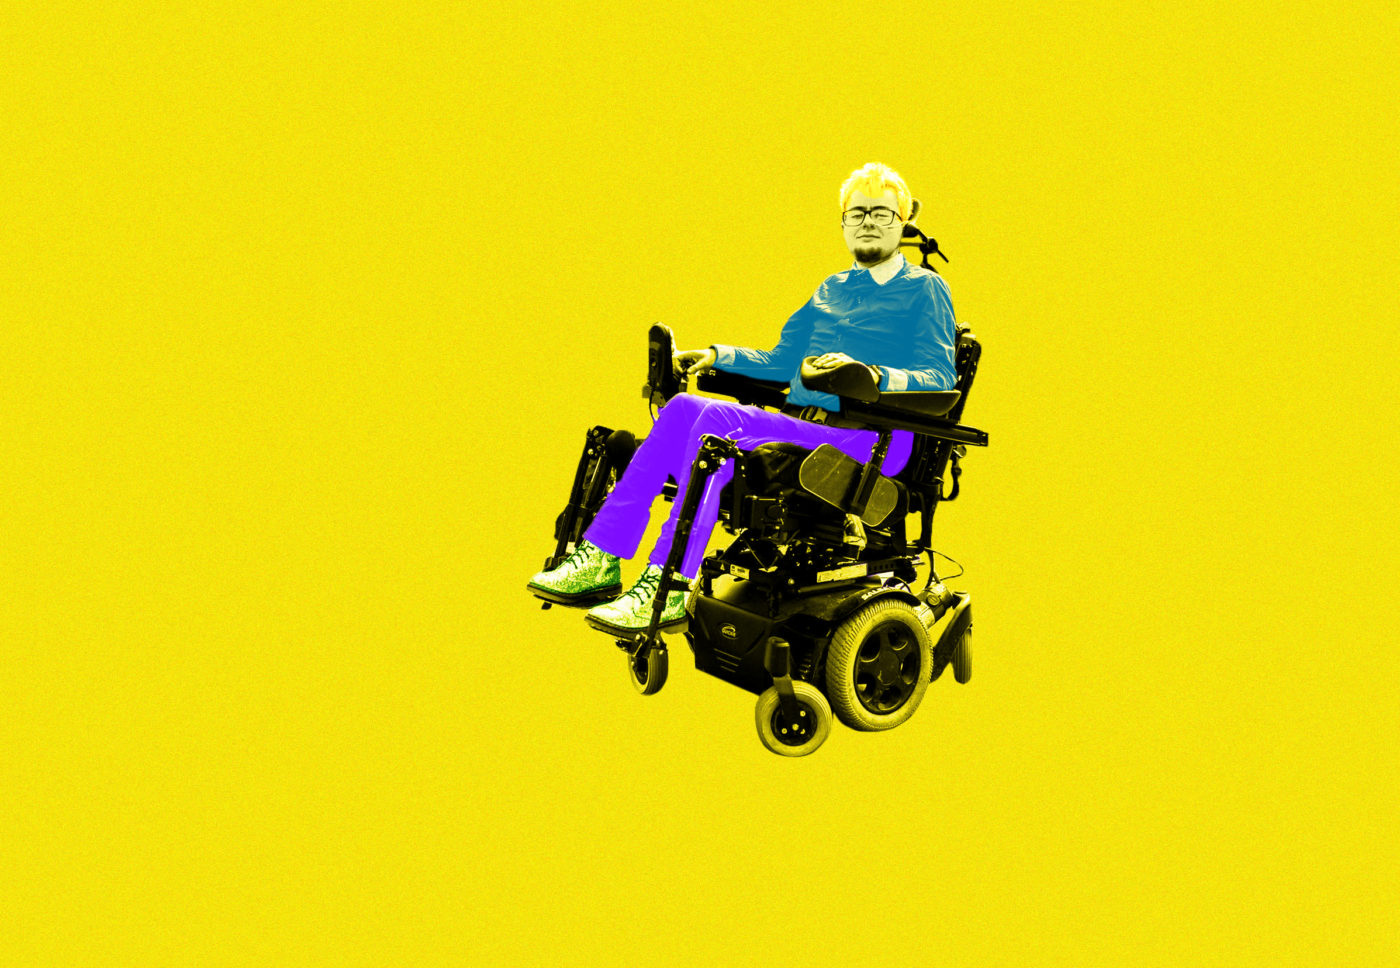 Jamie Hale is shown in a pop art style in their powered wheelchair. The colour of their photograph has been made black and white and then their trousers have been painted purple and their top is blue. The background is yellow and the words CRIPtic span the width of the image in red bold font behind Jamie.